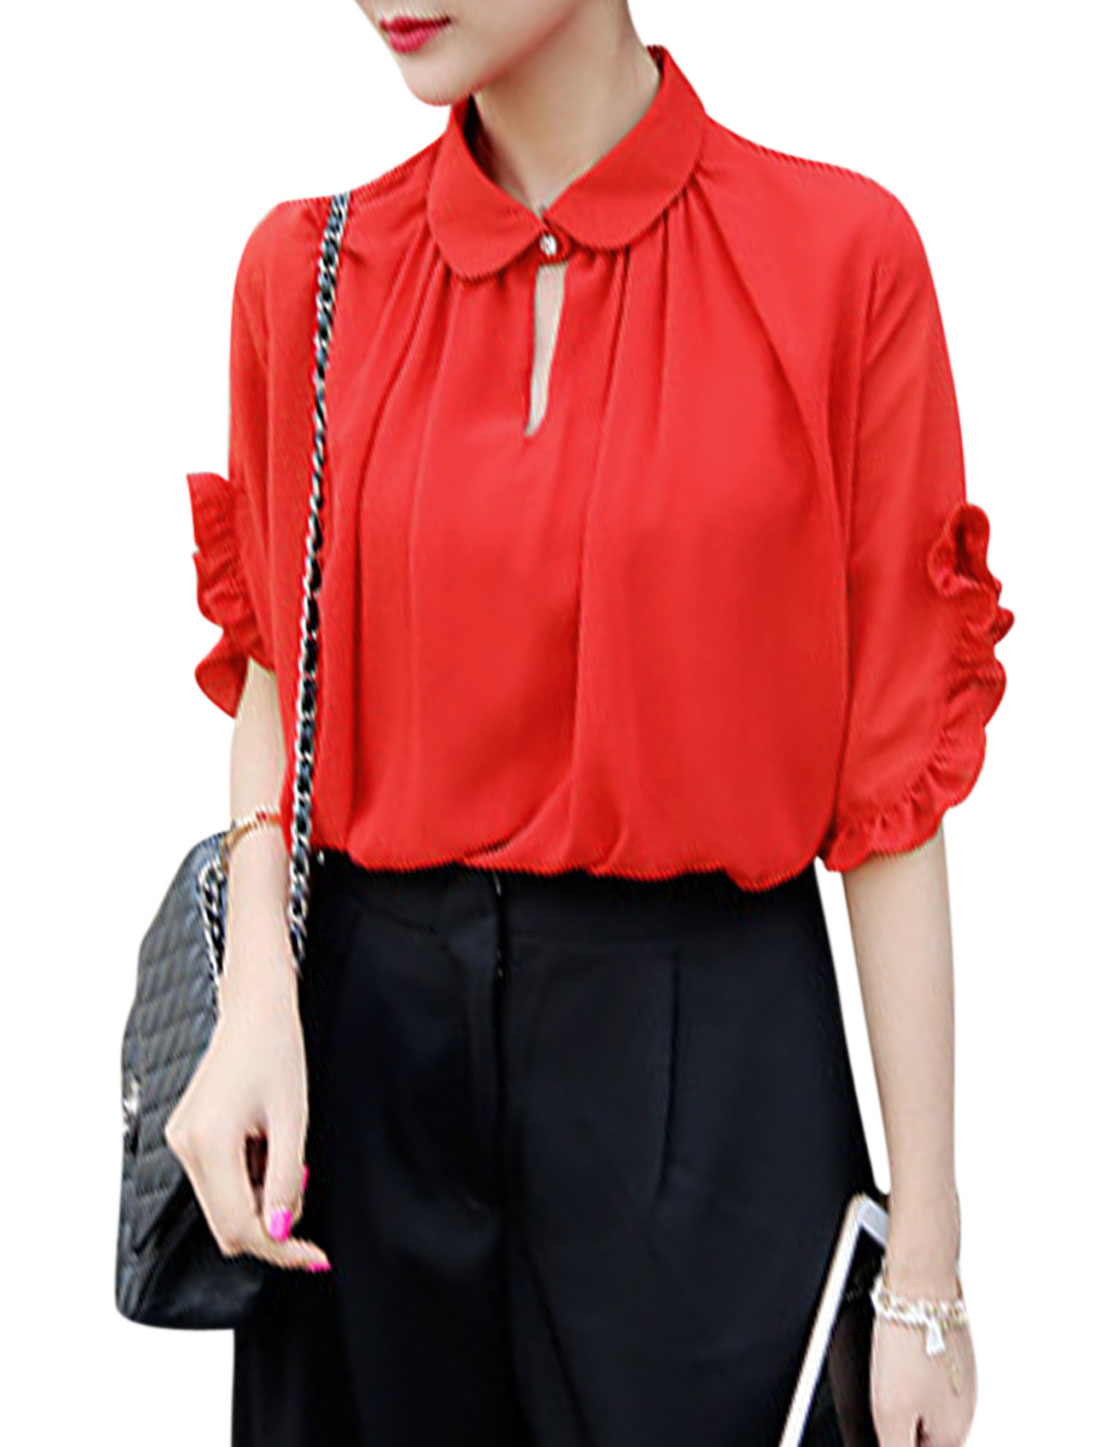 Women Point Collar Elbow Sleeves Flouncing Cuffs Chiffon Shirts Red XS